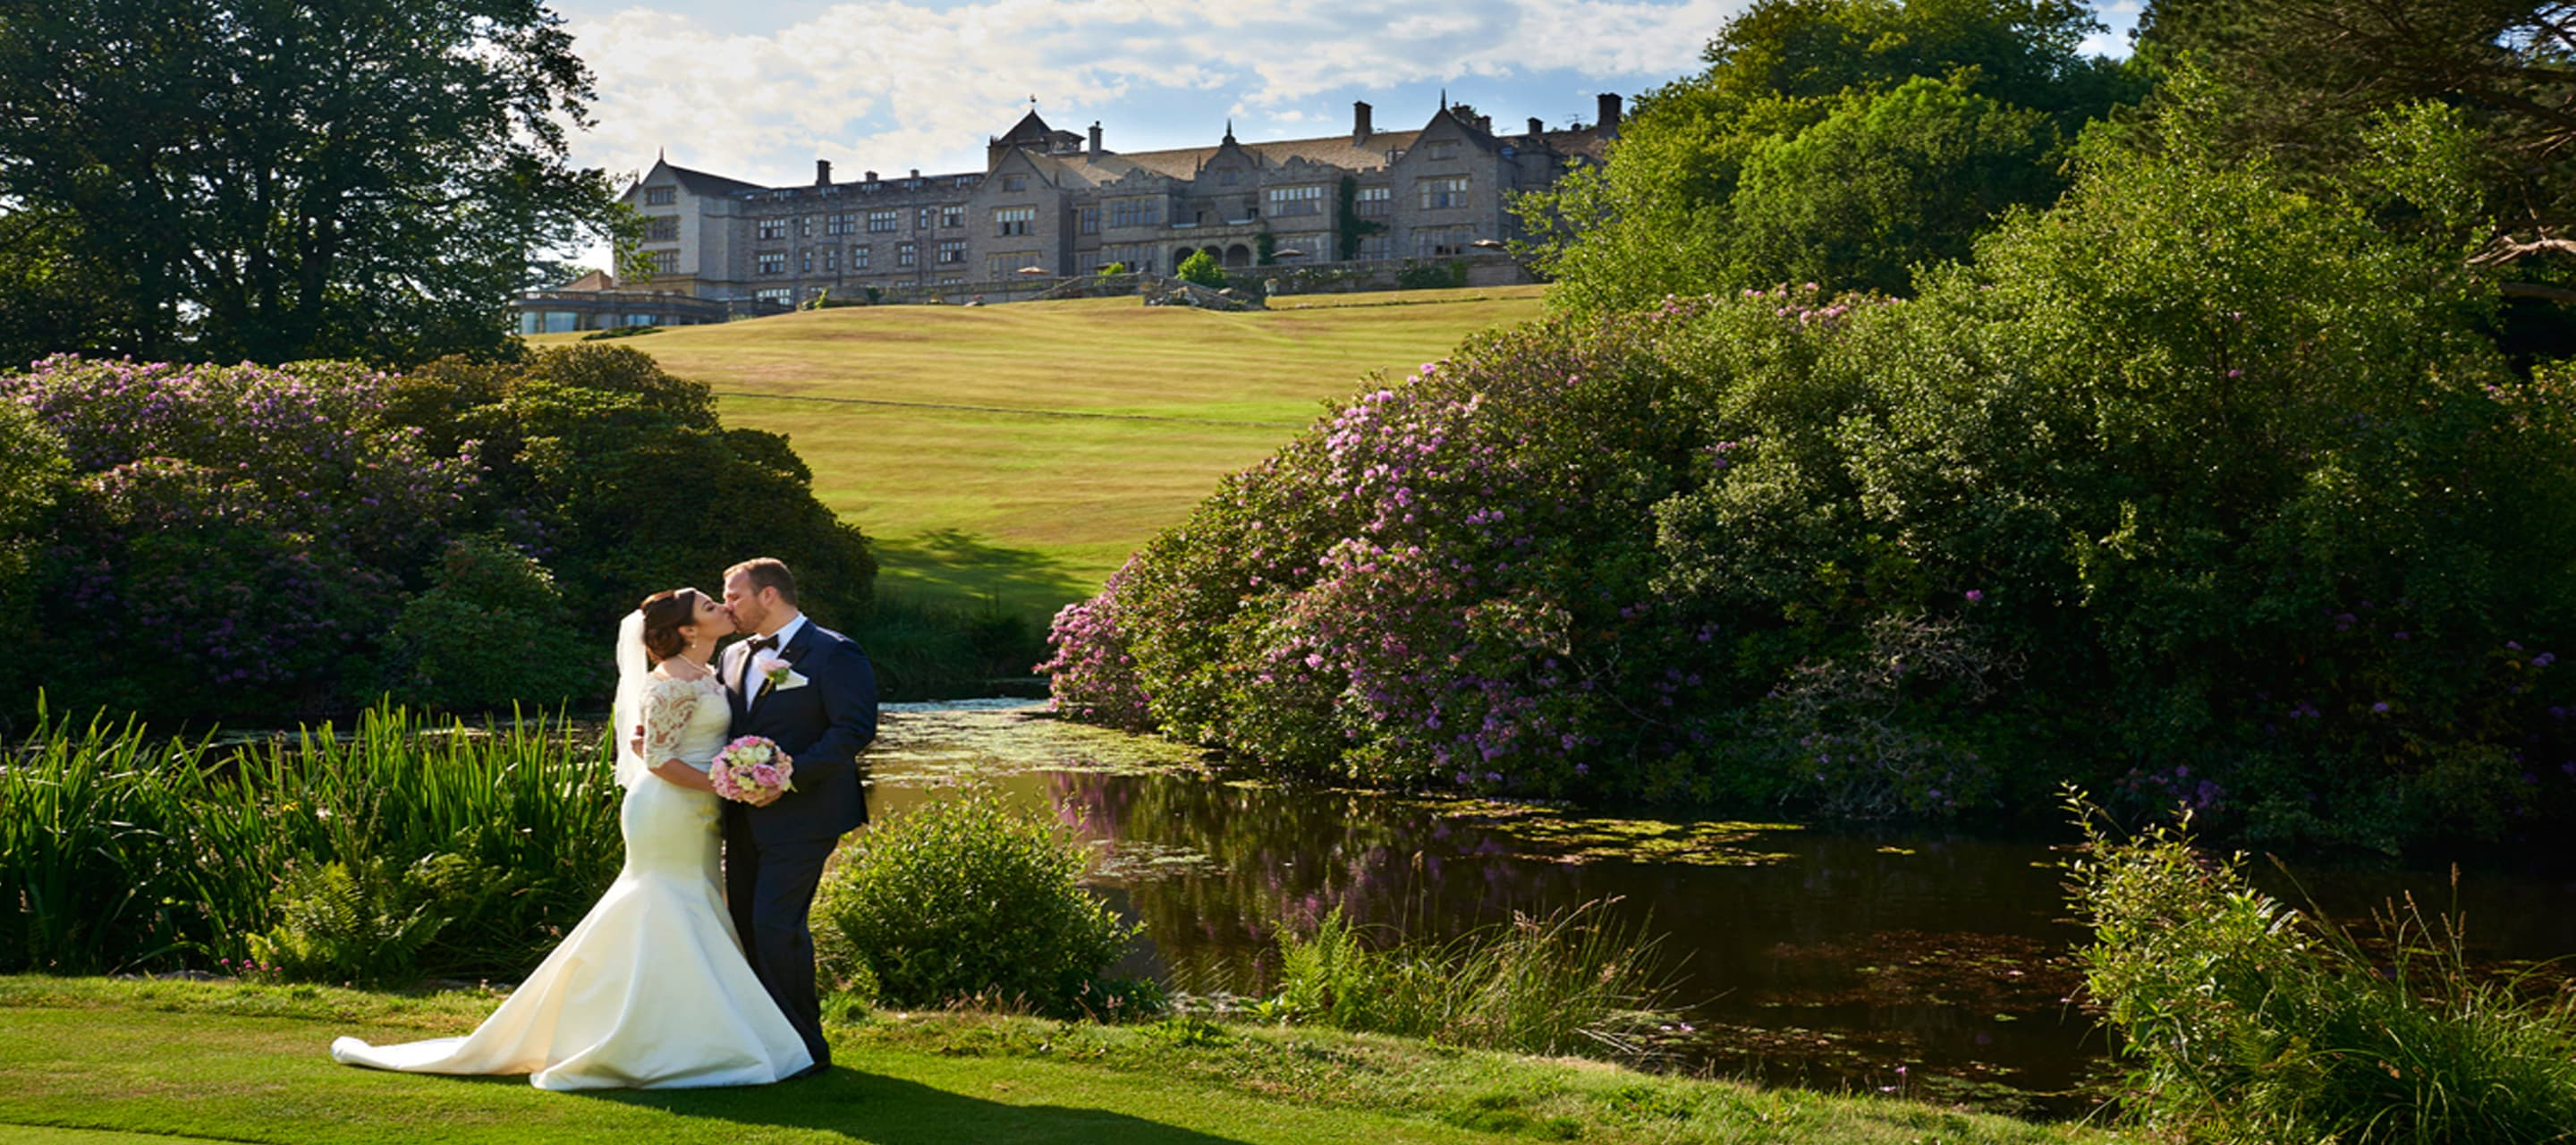 Wonderful English weddings with the Eden Hotel Collection